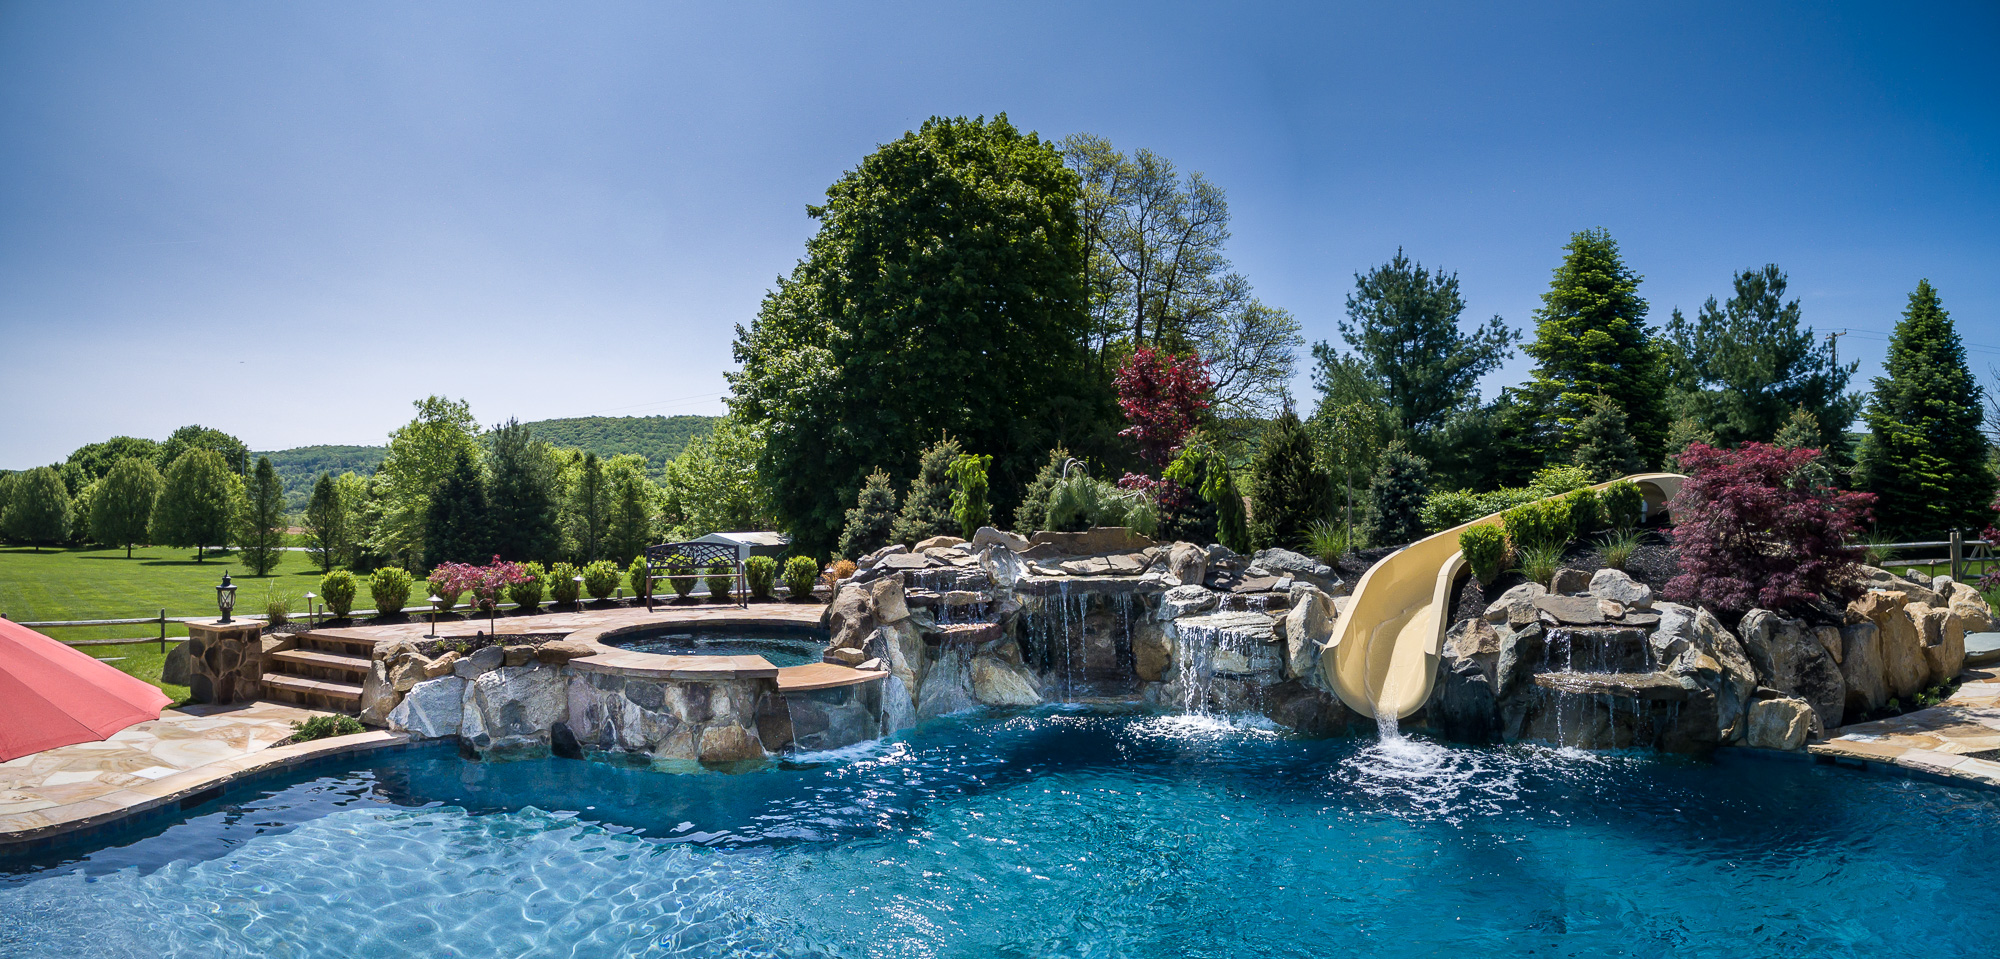 Bloomsbury nj custom inground swimming pool design for Pool design inc bordentown nj